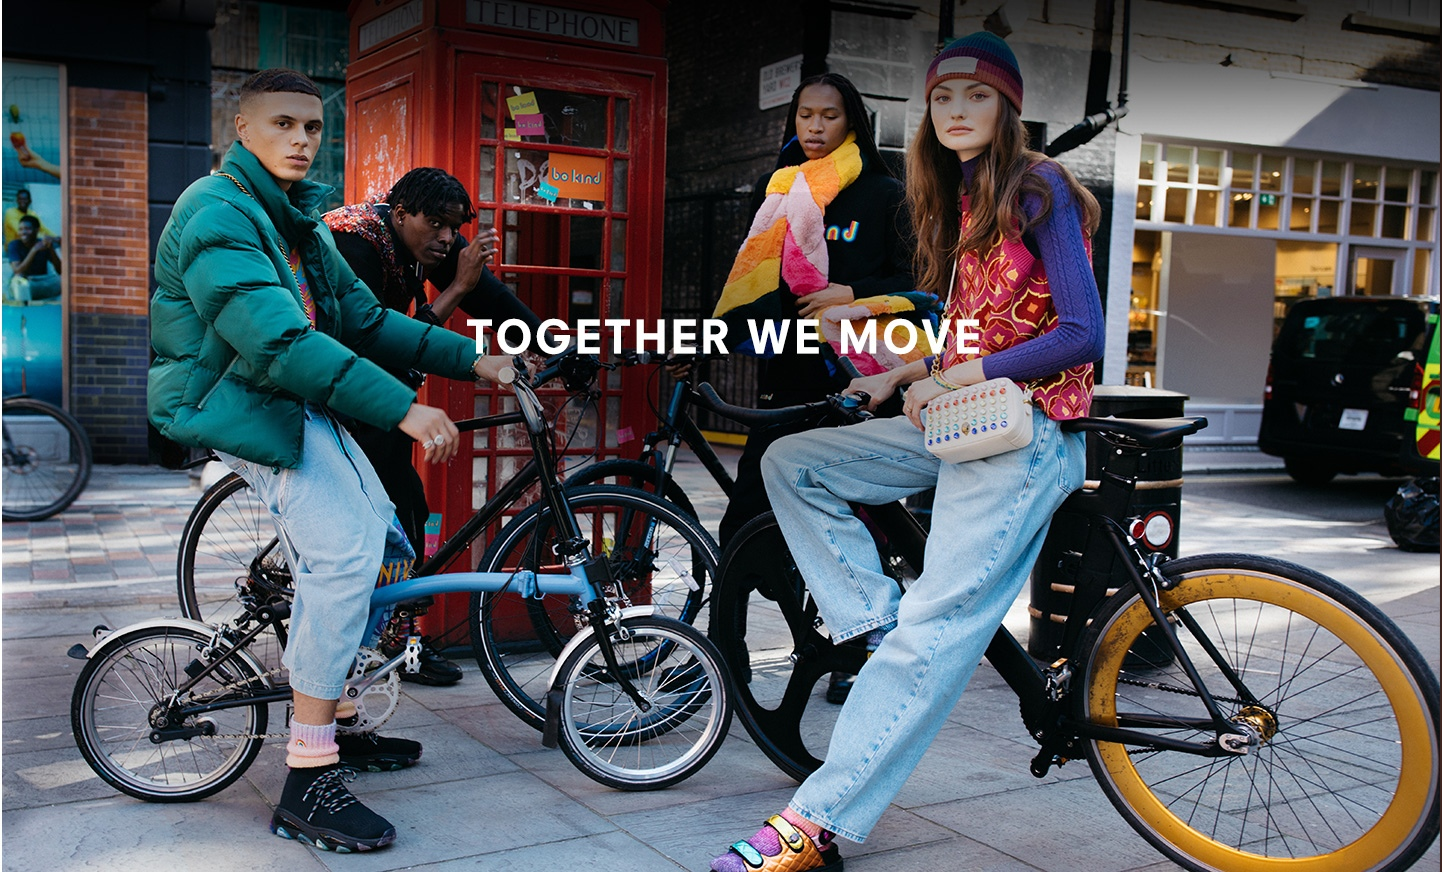 Together We Move Group Image Infront of Telephone Box.